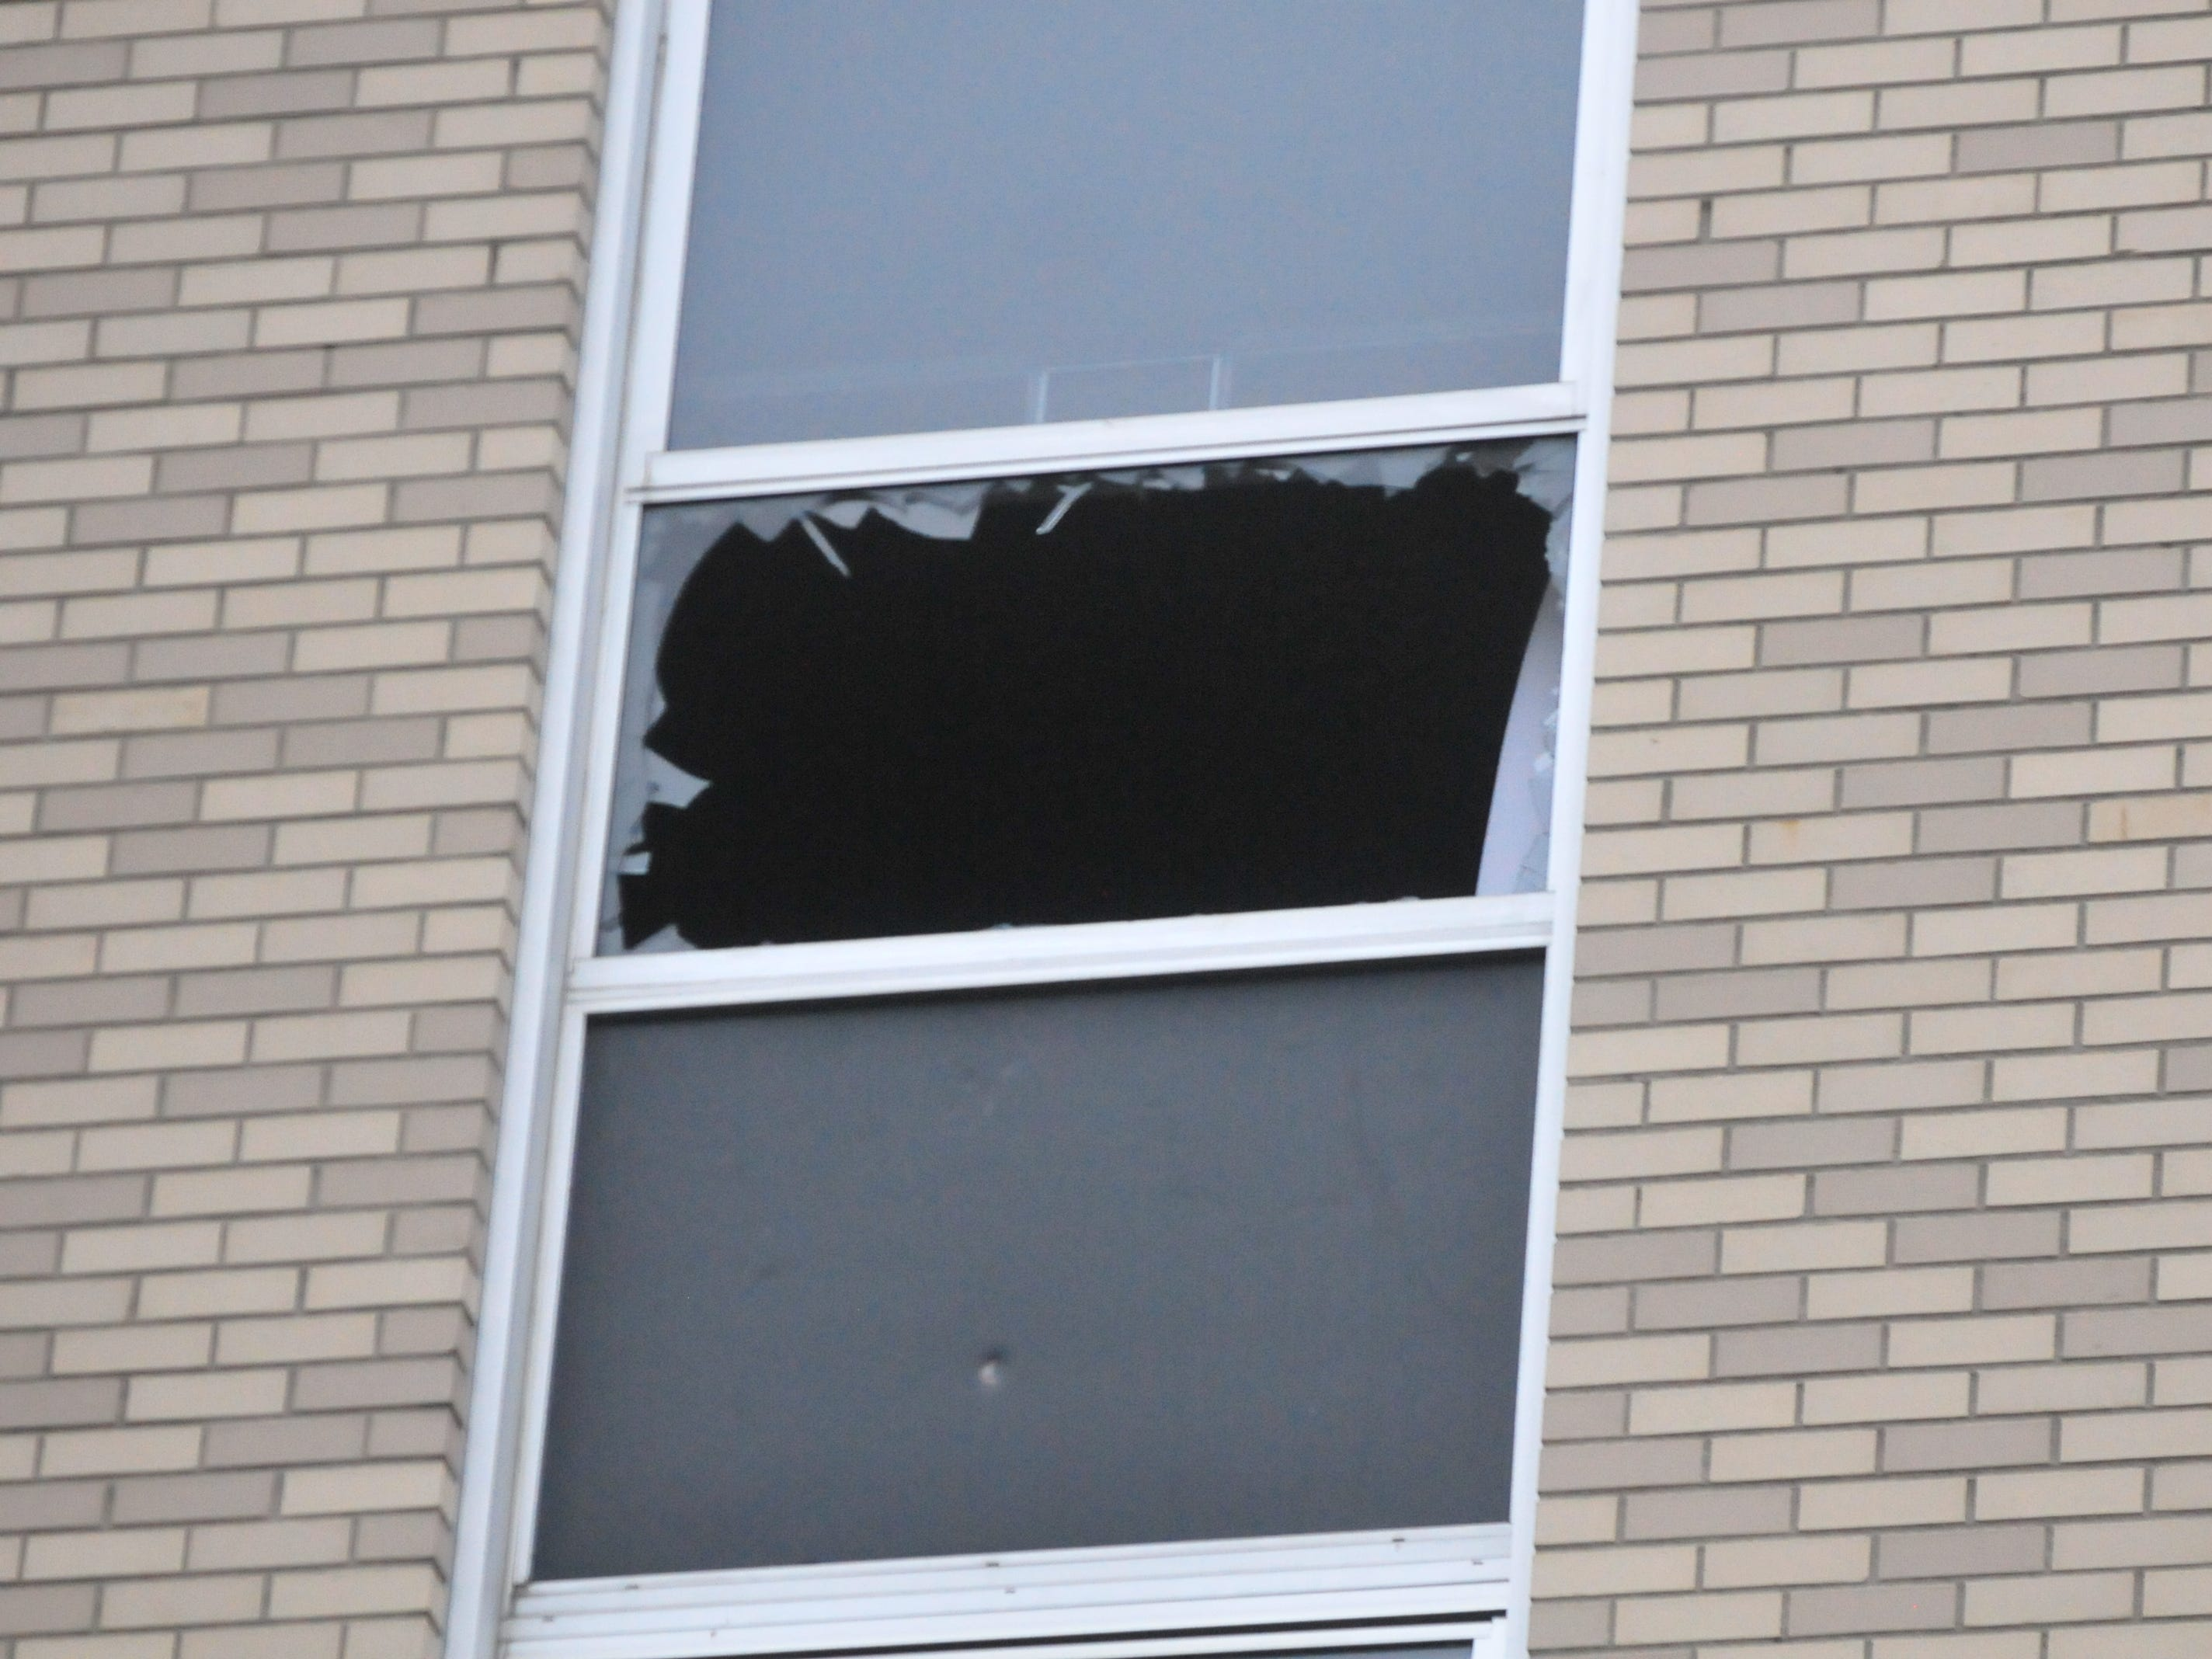 A window was broken during Monday's fire at Interfaith Apartments.